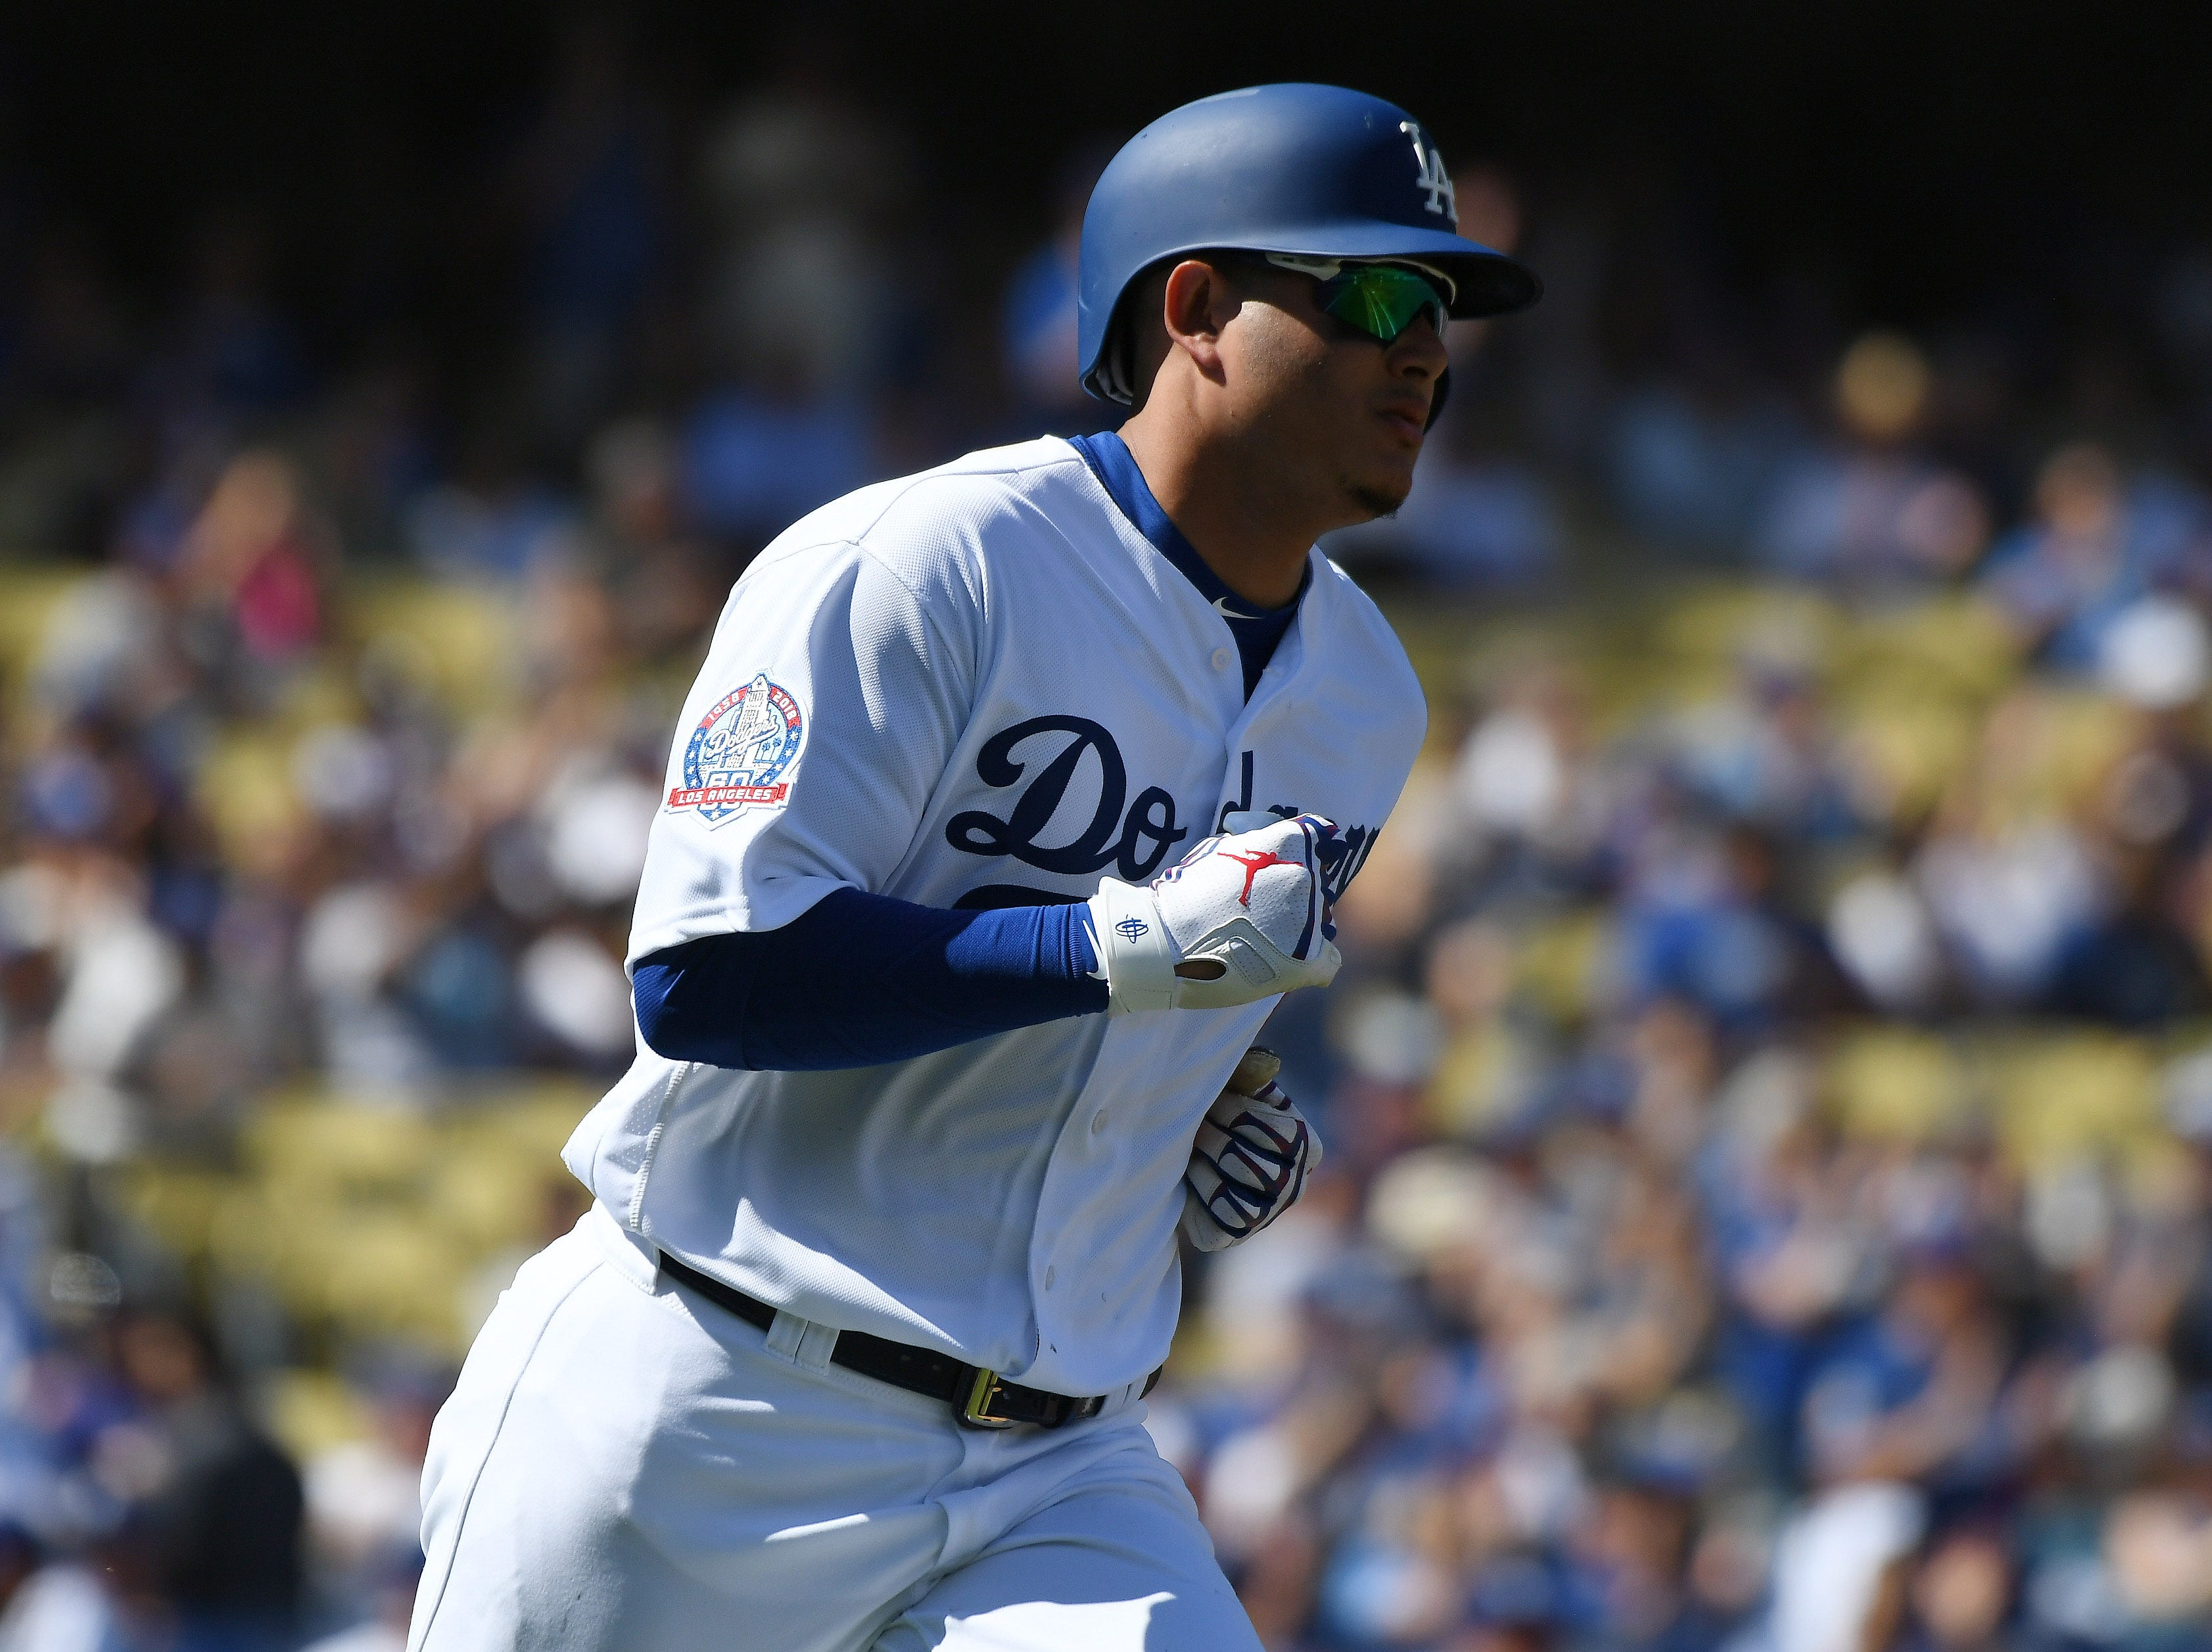 Dodgers shortstop Manny Machado singles in the second inning.